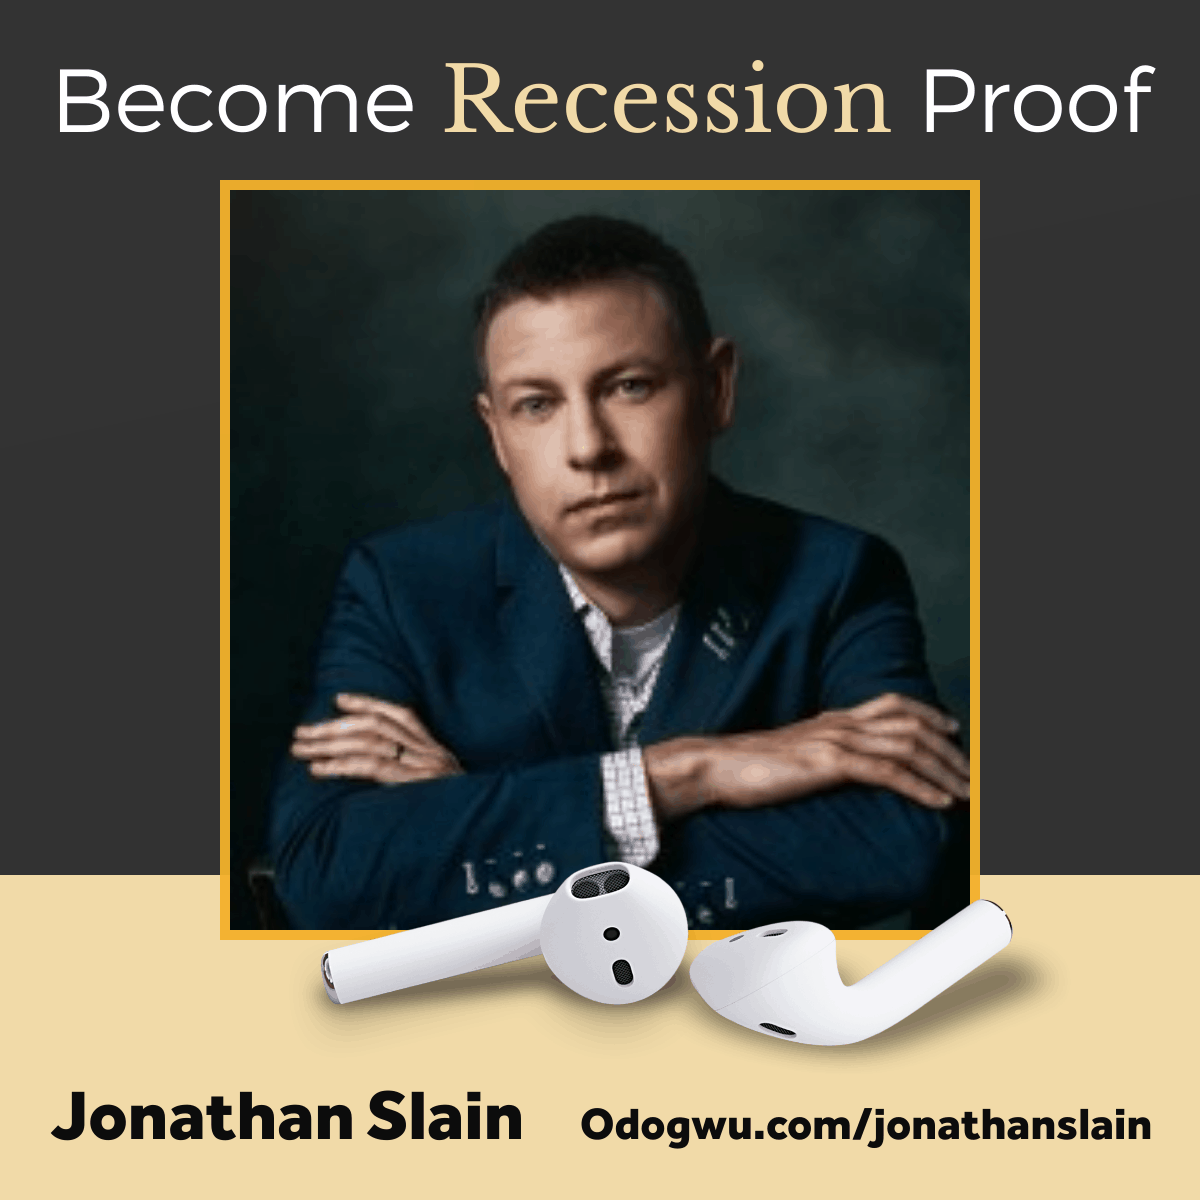 How To Become Recession Proof with Jonathan Slain